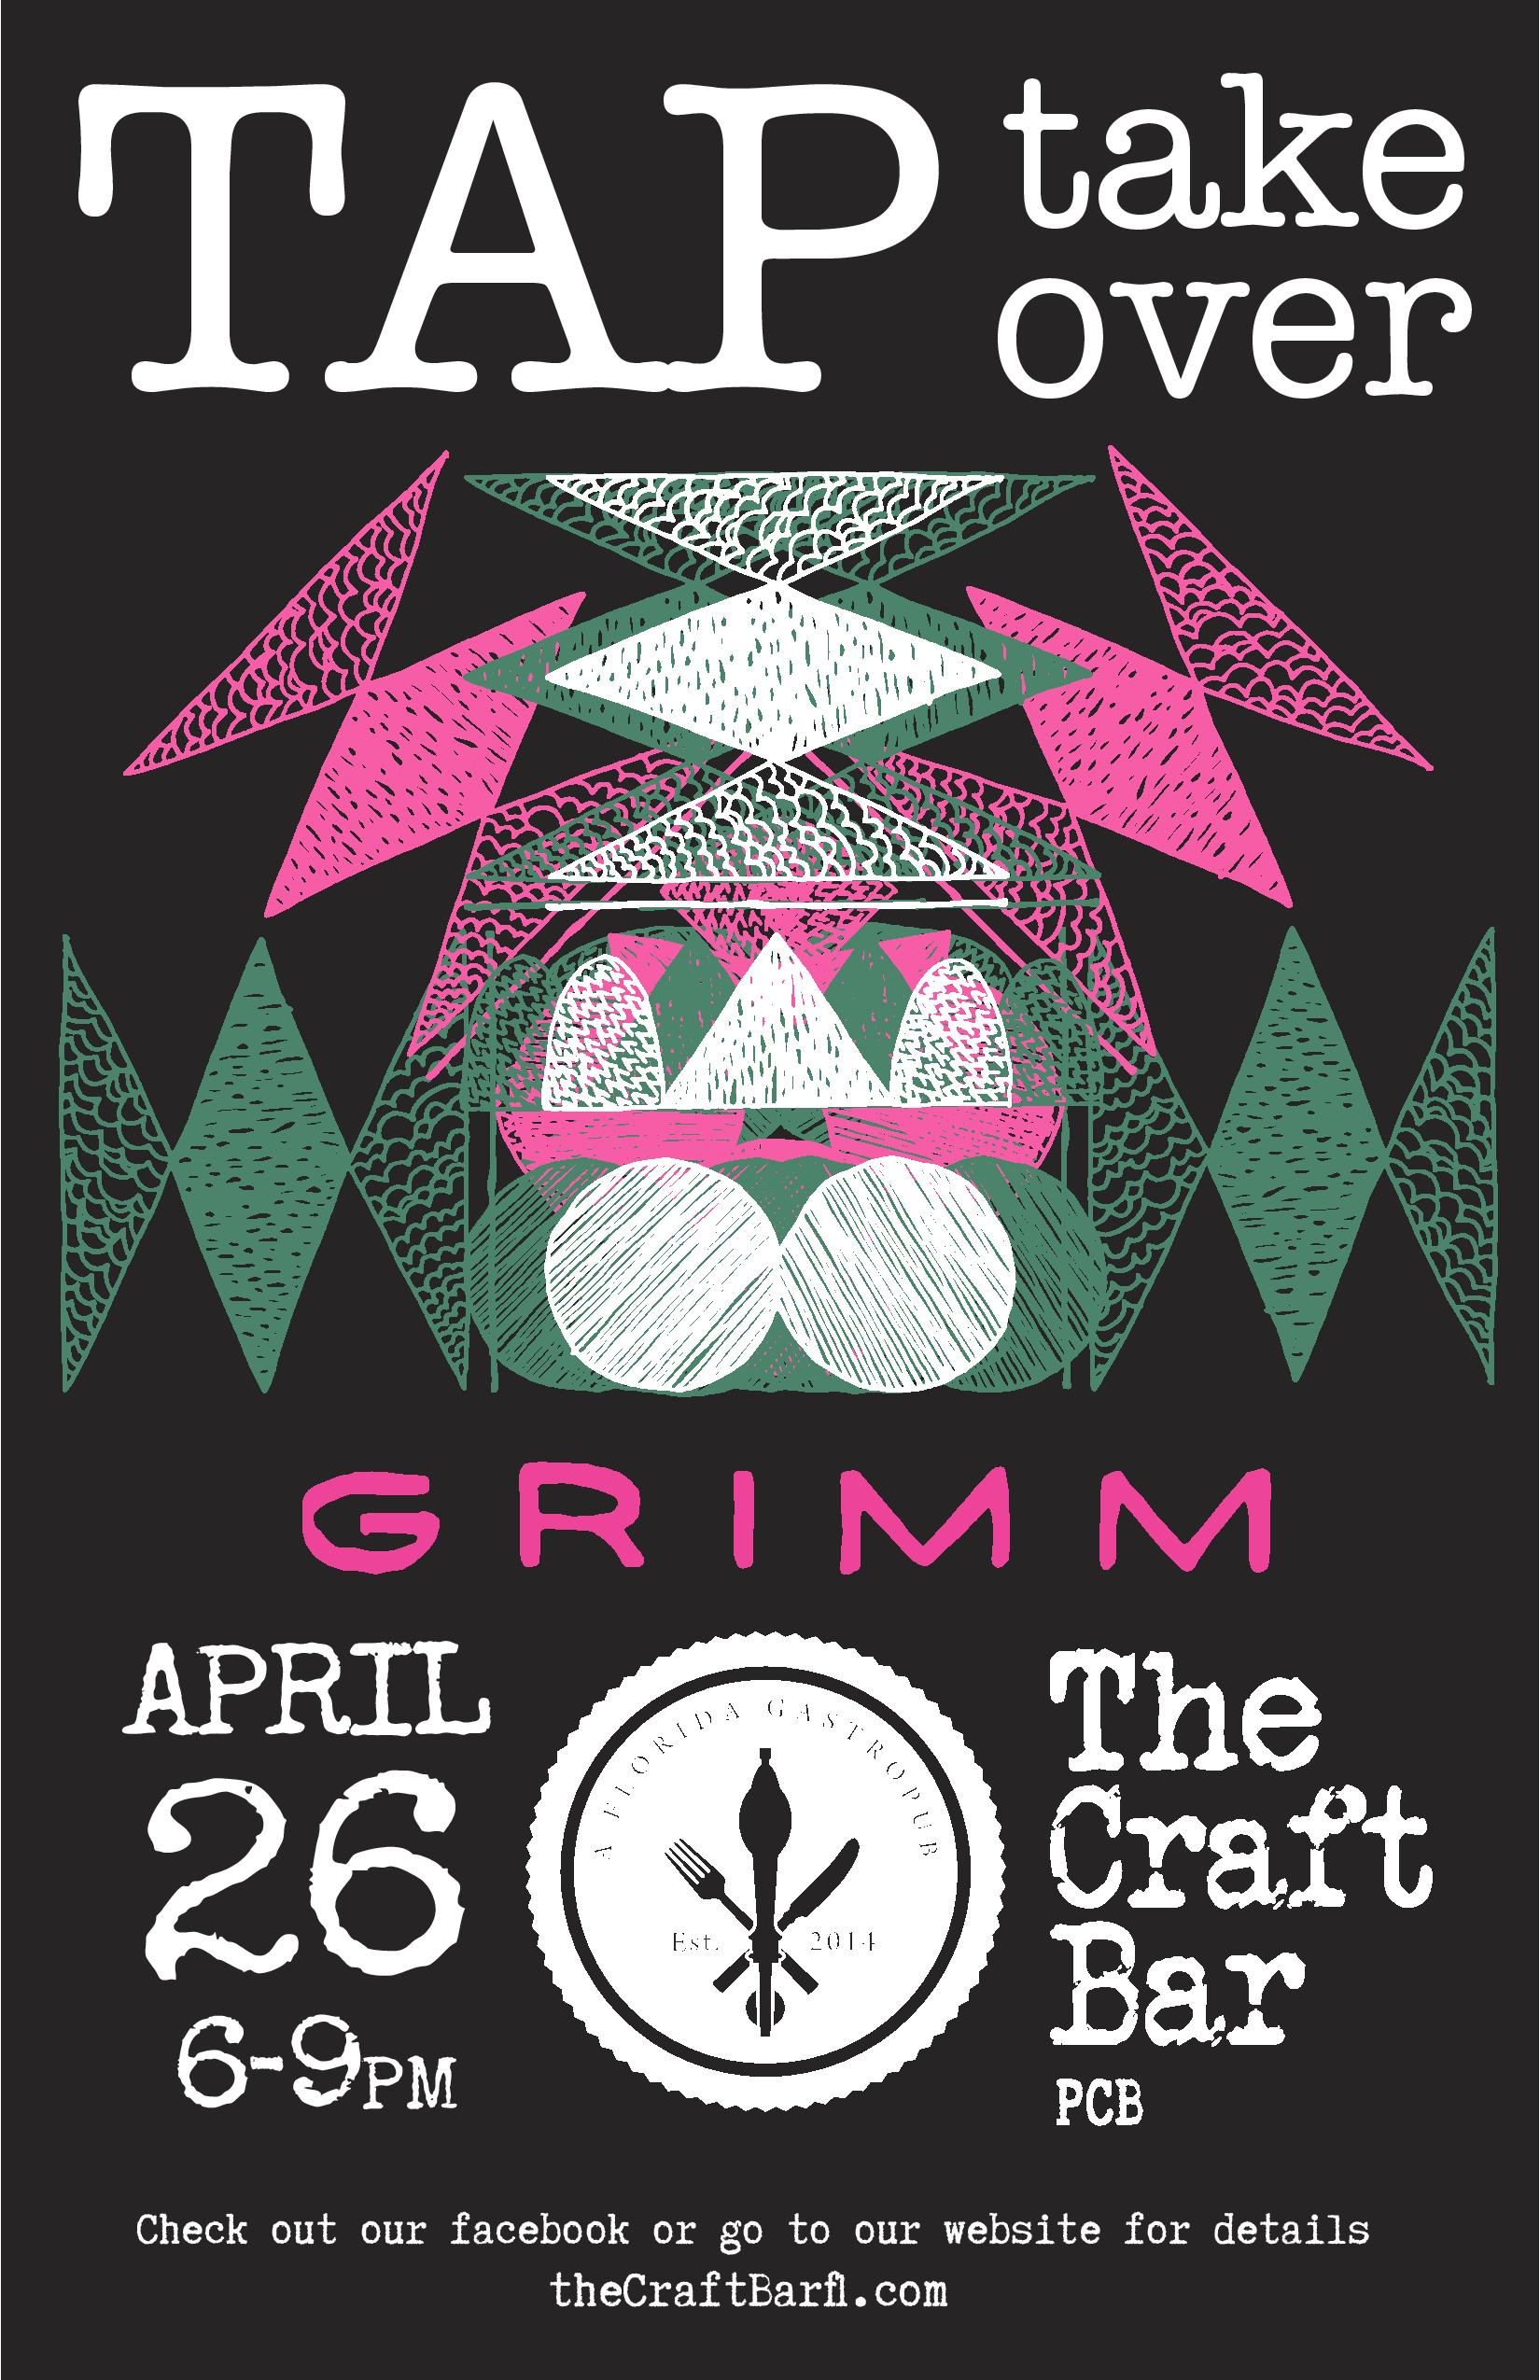 Tap Takeover - GRIMM - PCB Poster-page-001.jpg